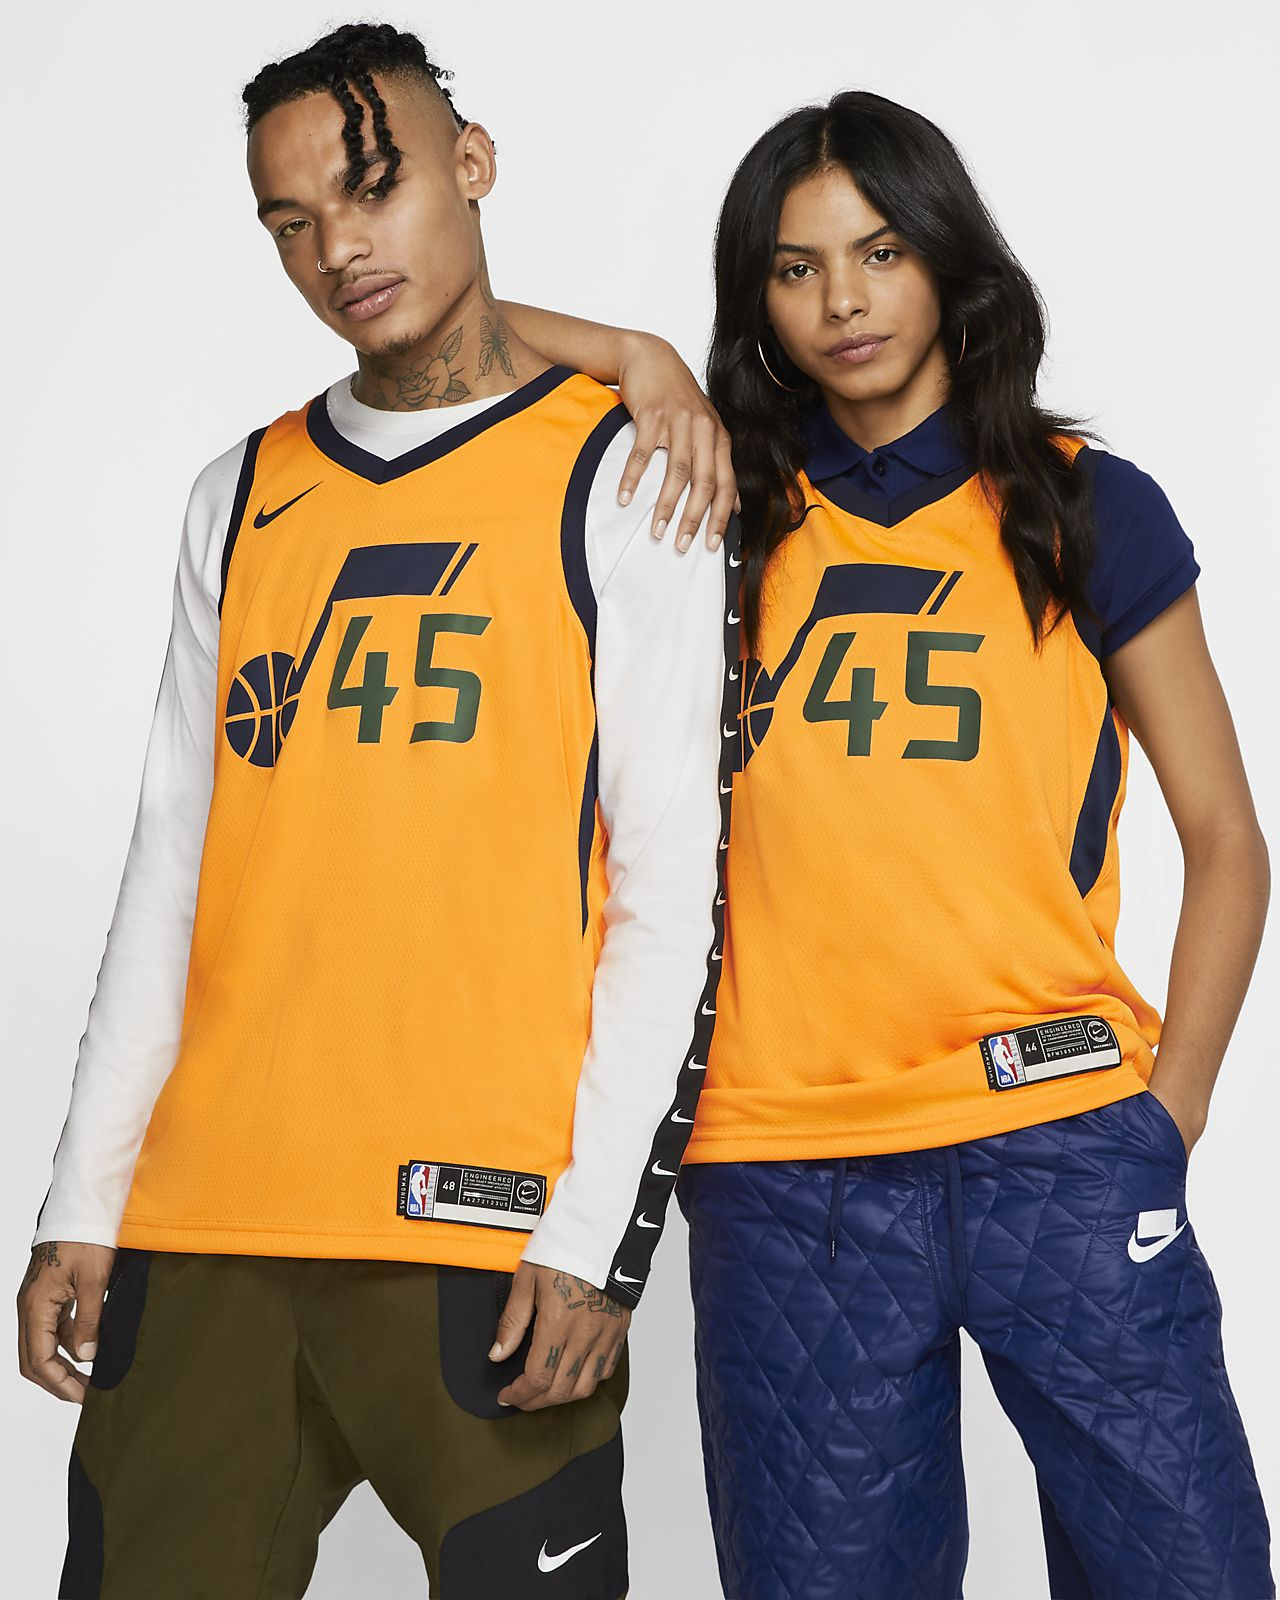 4a9b5f822f05 Men s Nike NBA Connected Jersey. Donovan Mitchell Statement Edition Swingman  (Utah Jazz)